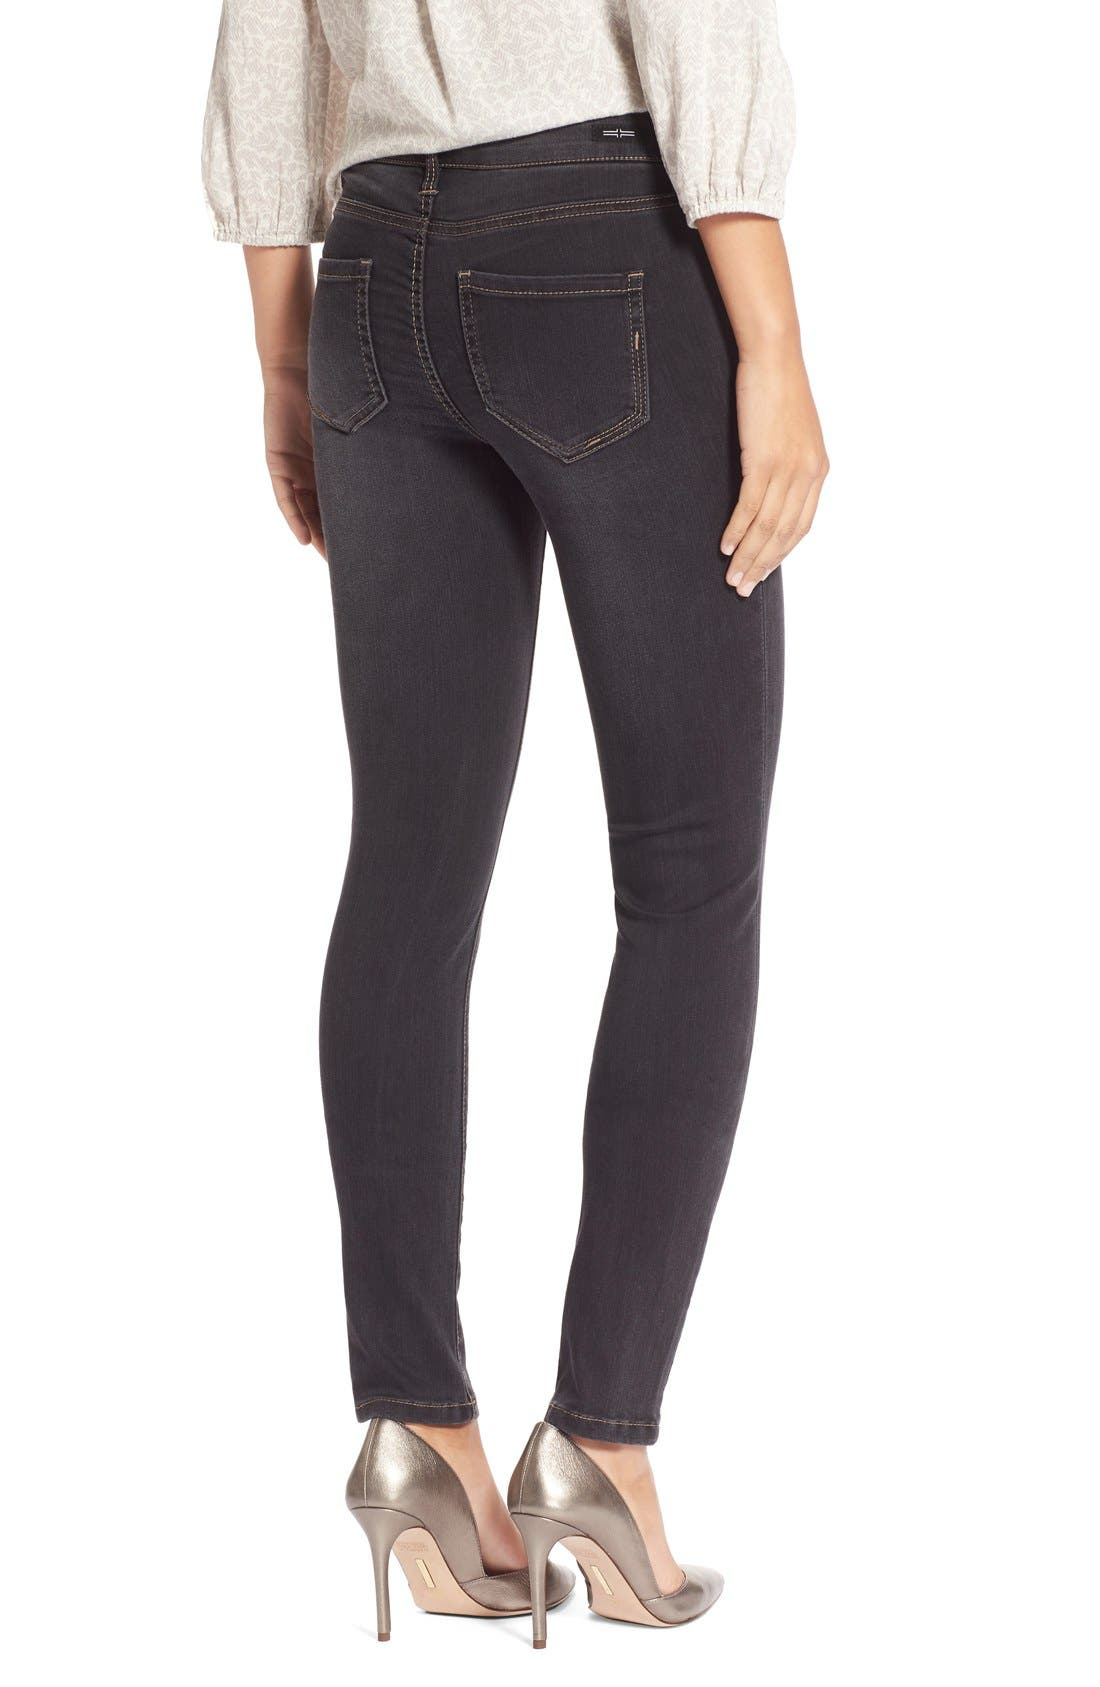 Abby StretchSkinny Jeans,                             Alternate thumbnail 2, color,                             020